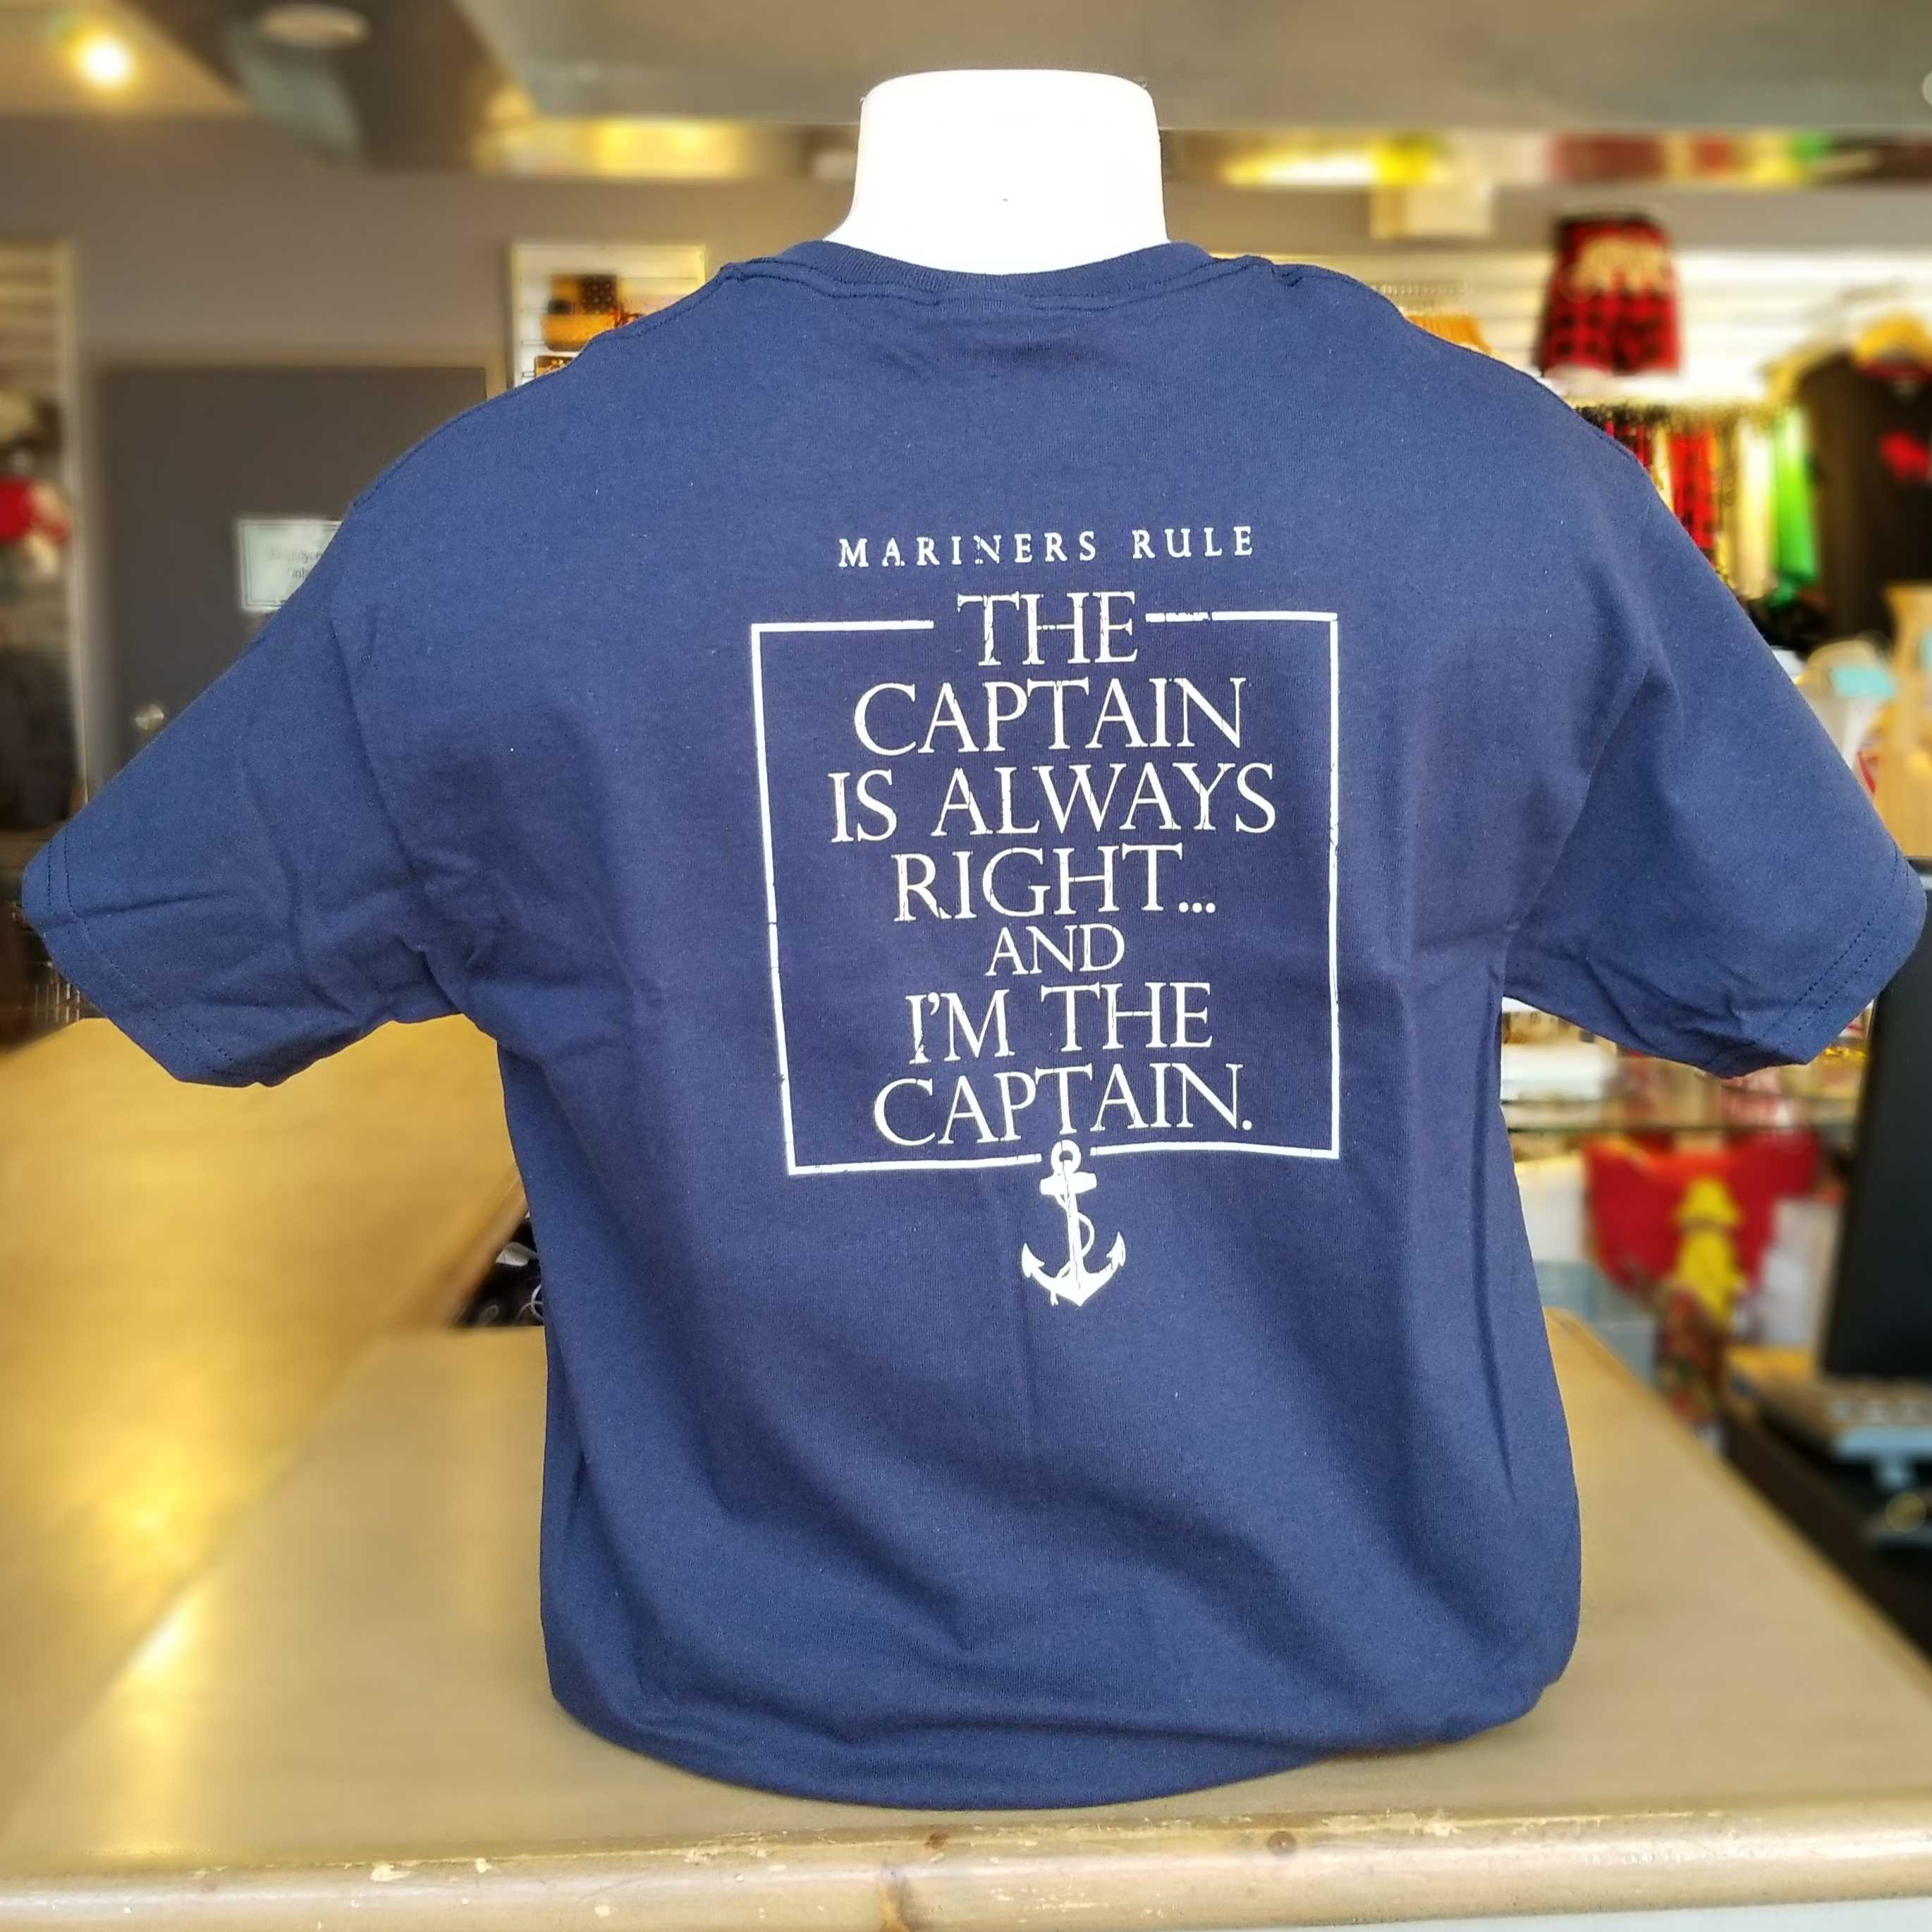 Mariner's Rule T-Shirt